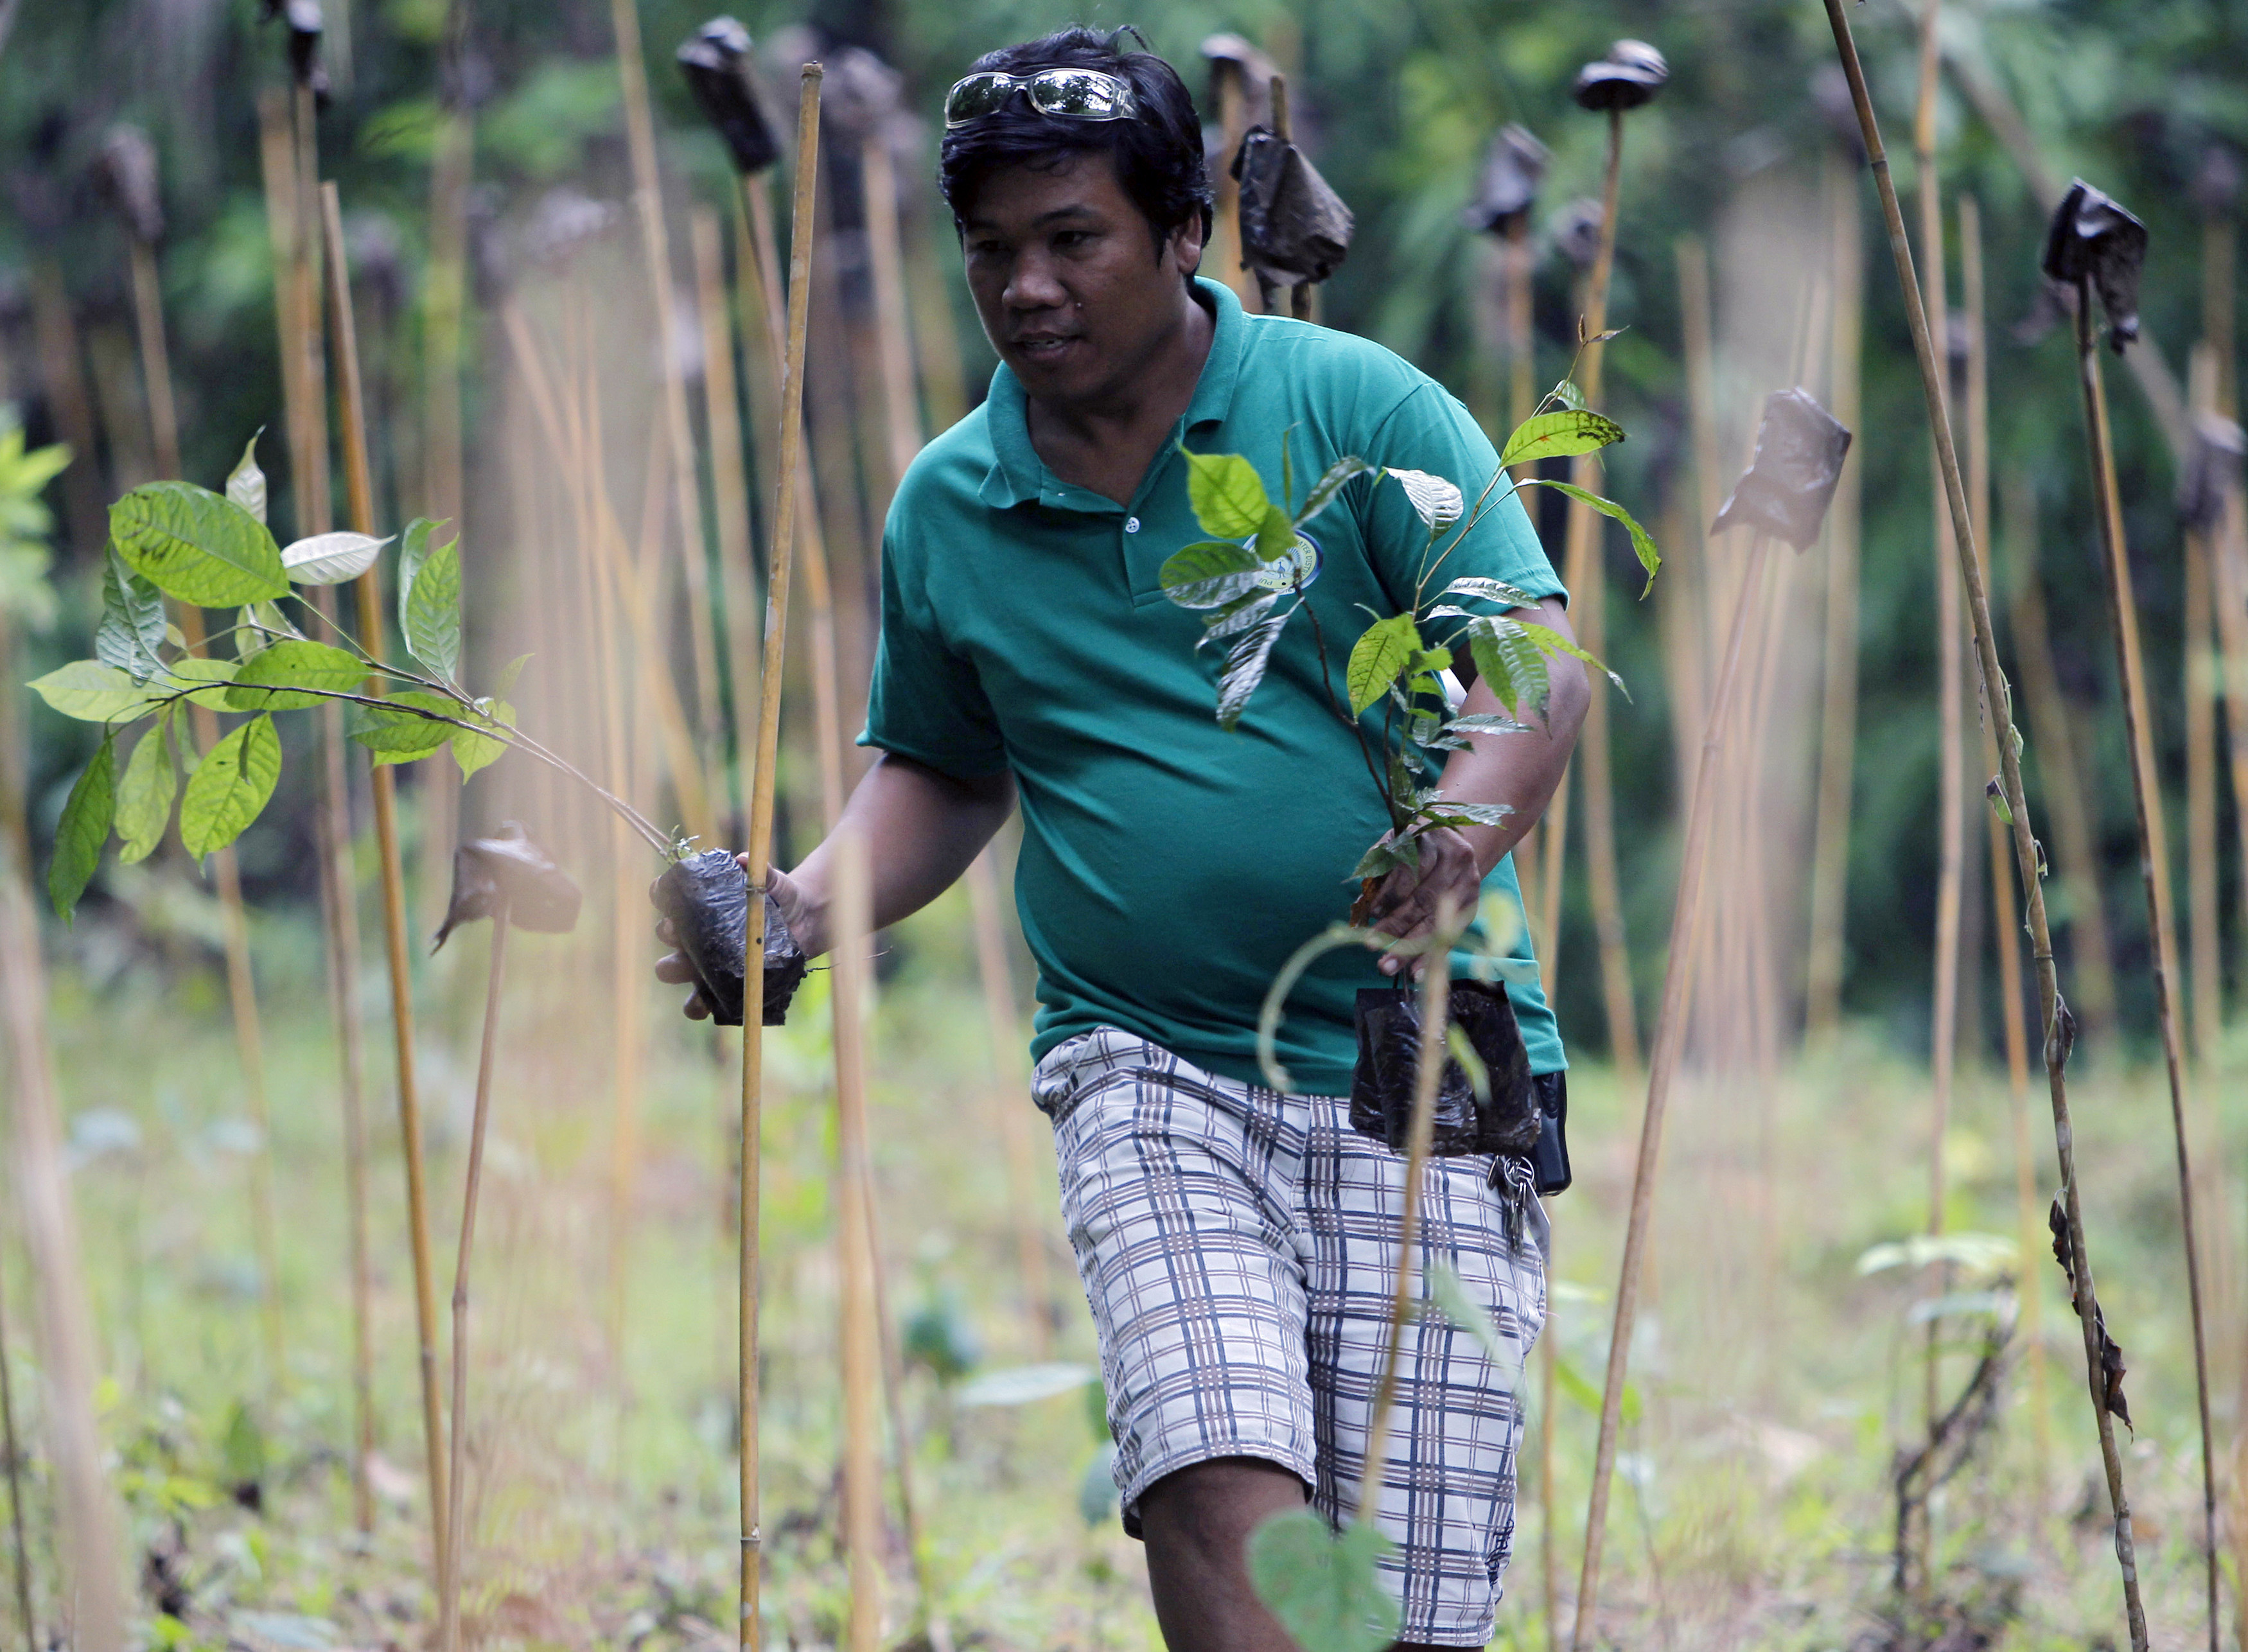 A resident prepares to plant a mahogany tree sapling during the Feast of the Forest event at Cagueban town, Palawan city, western Philippines June 30, 2012. The annual event, a massive tree planting exercise, was started in 1991 to raise awareness on environmental issues, in Palawan city. REUTERS/Romeo Ranoco (PHILIPPINES - Tags: ENVIRONMENT SOCIETY) - GM1E86U15KN01